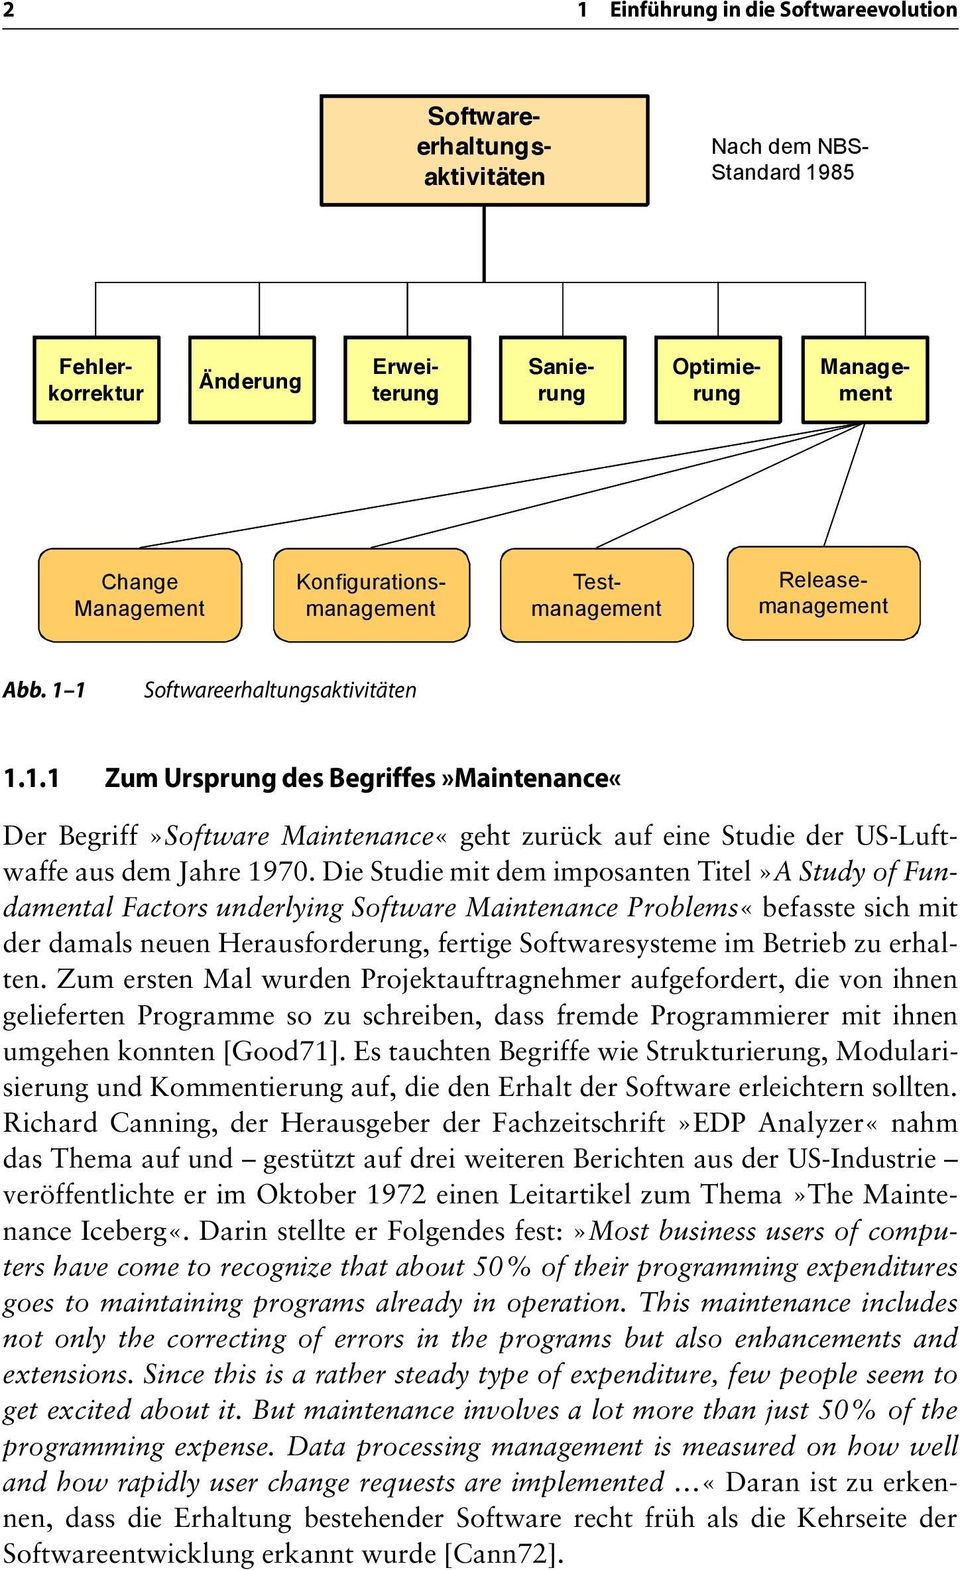 Die Studie mit dem imposanten Titel»A Study of Fundamental Factors underlying Software Maintenance Problems«befasste sich mit der damals neuen Herausforderung, fertige Softwaresysteme im Betrieb zu